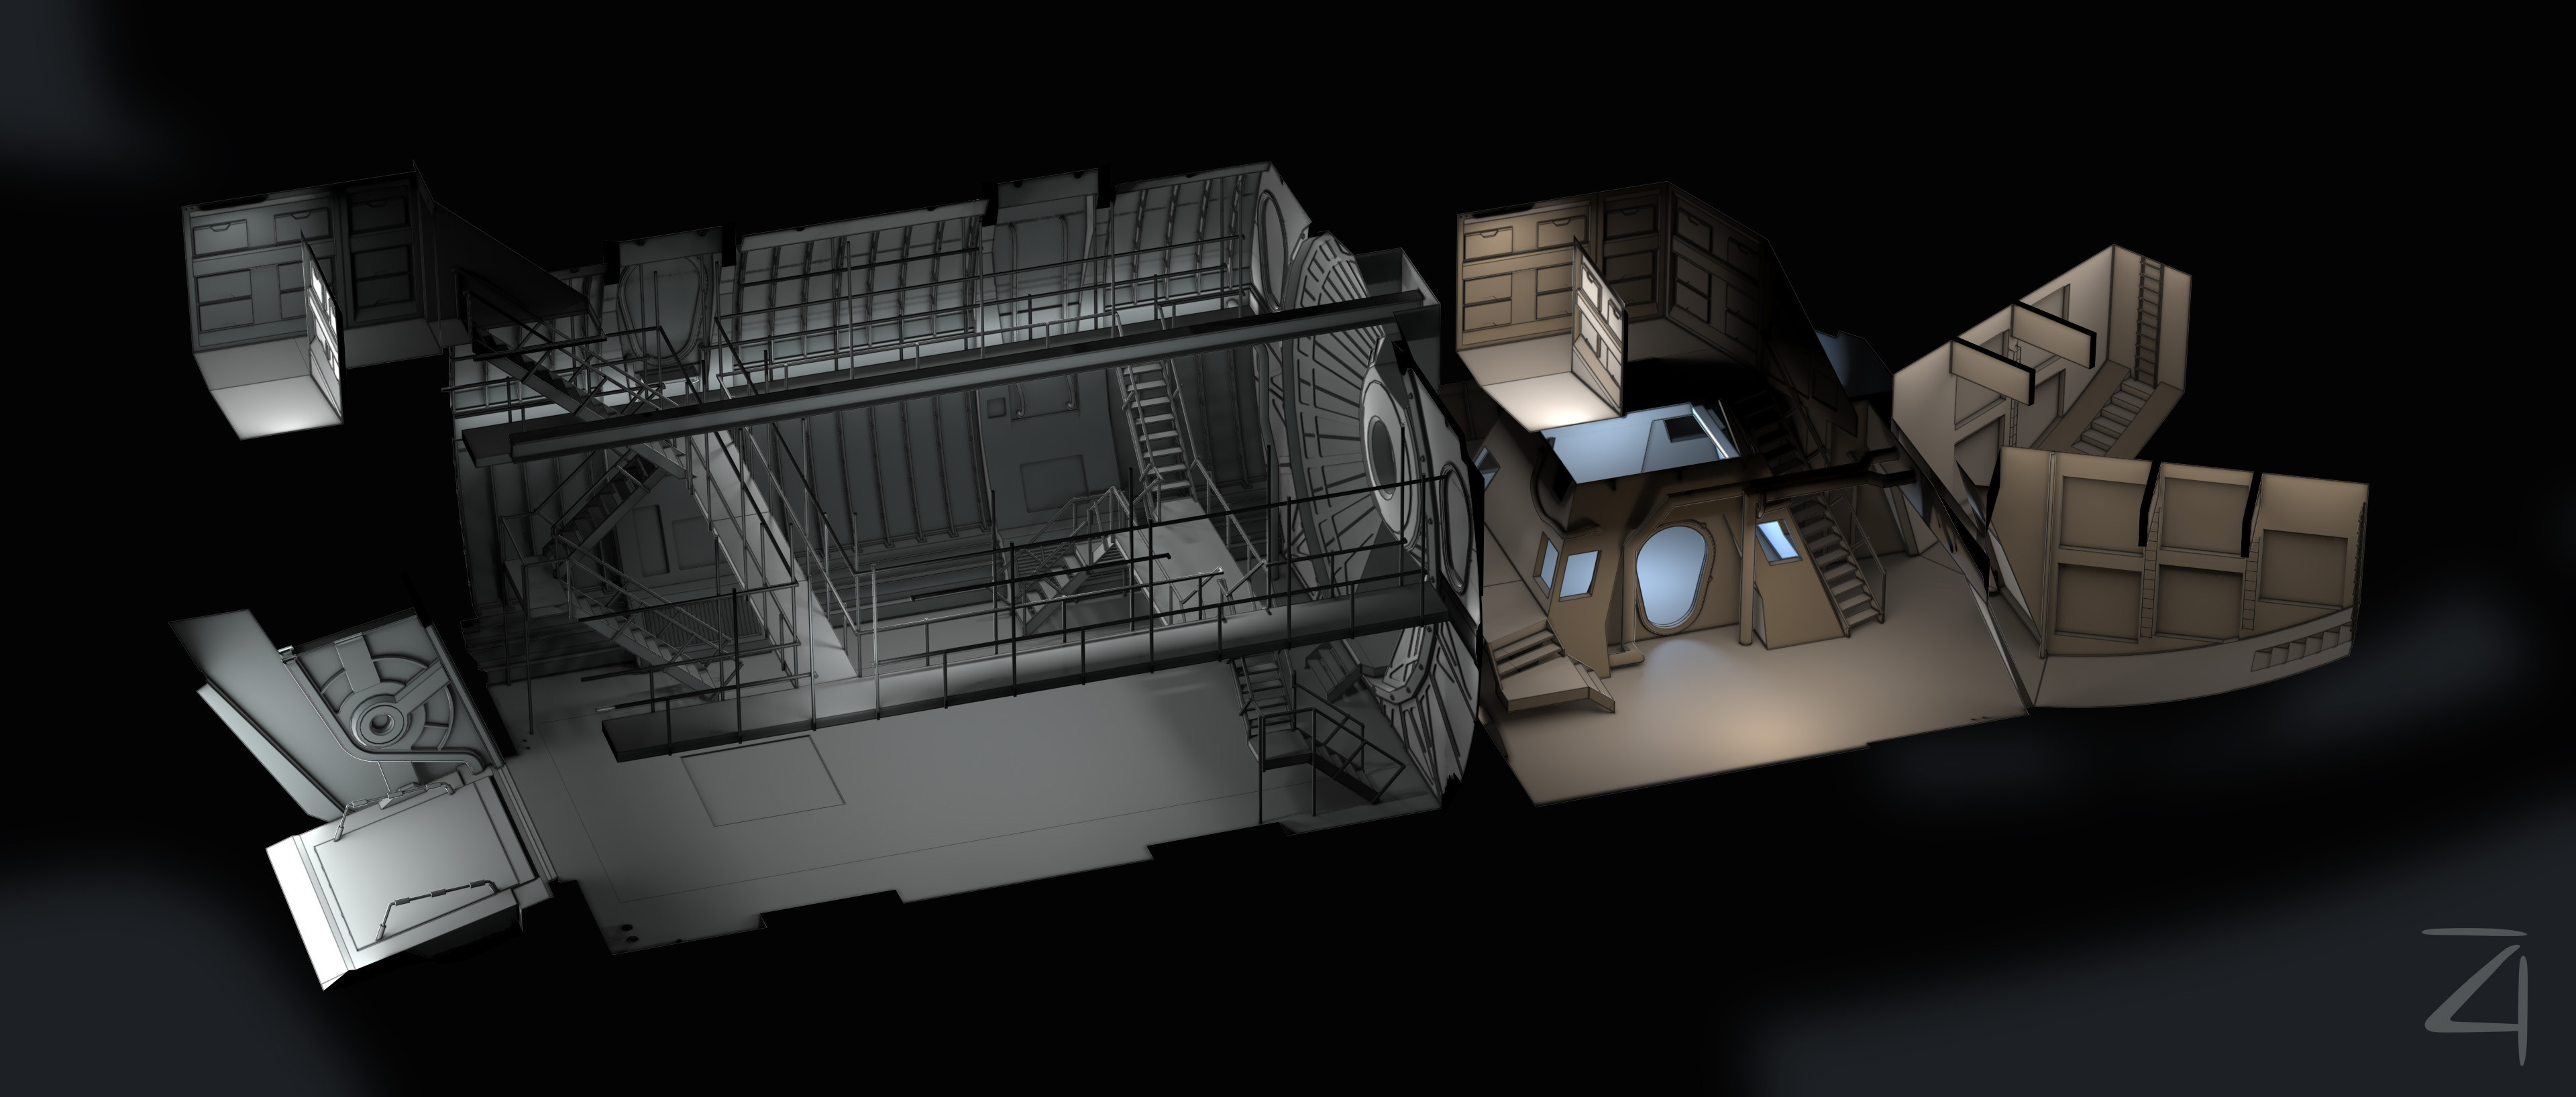 Overview of the bottom level. You can see why I didn't show both levels together, the passageway that goes from the lounge are up to the top level would need to be twice as high to reach above the top of the cargo hold.